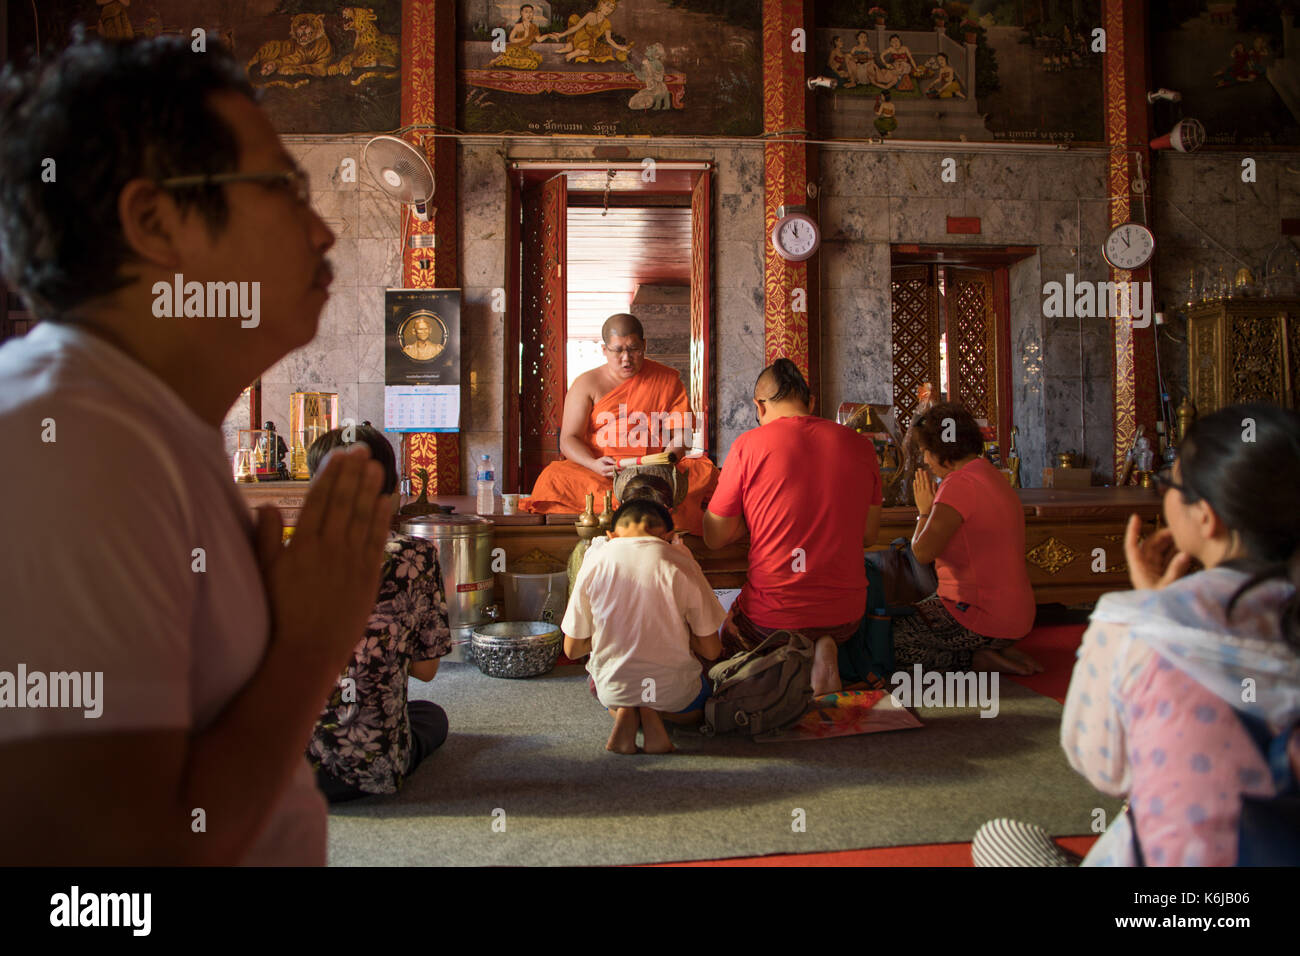 Buddhist monk blessing family at Wat Phra That Doi Suthep, Chiang Mai, Thailand - Stock Image